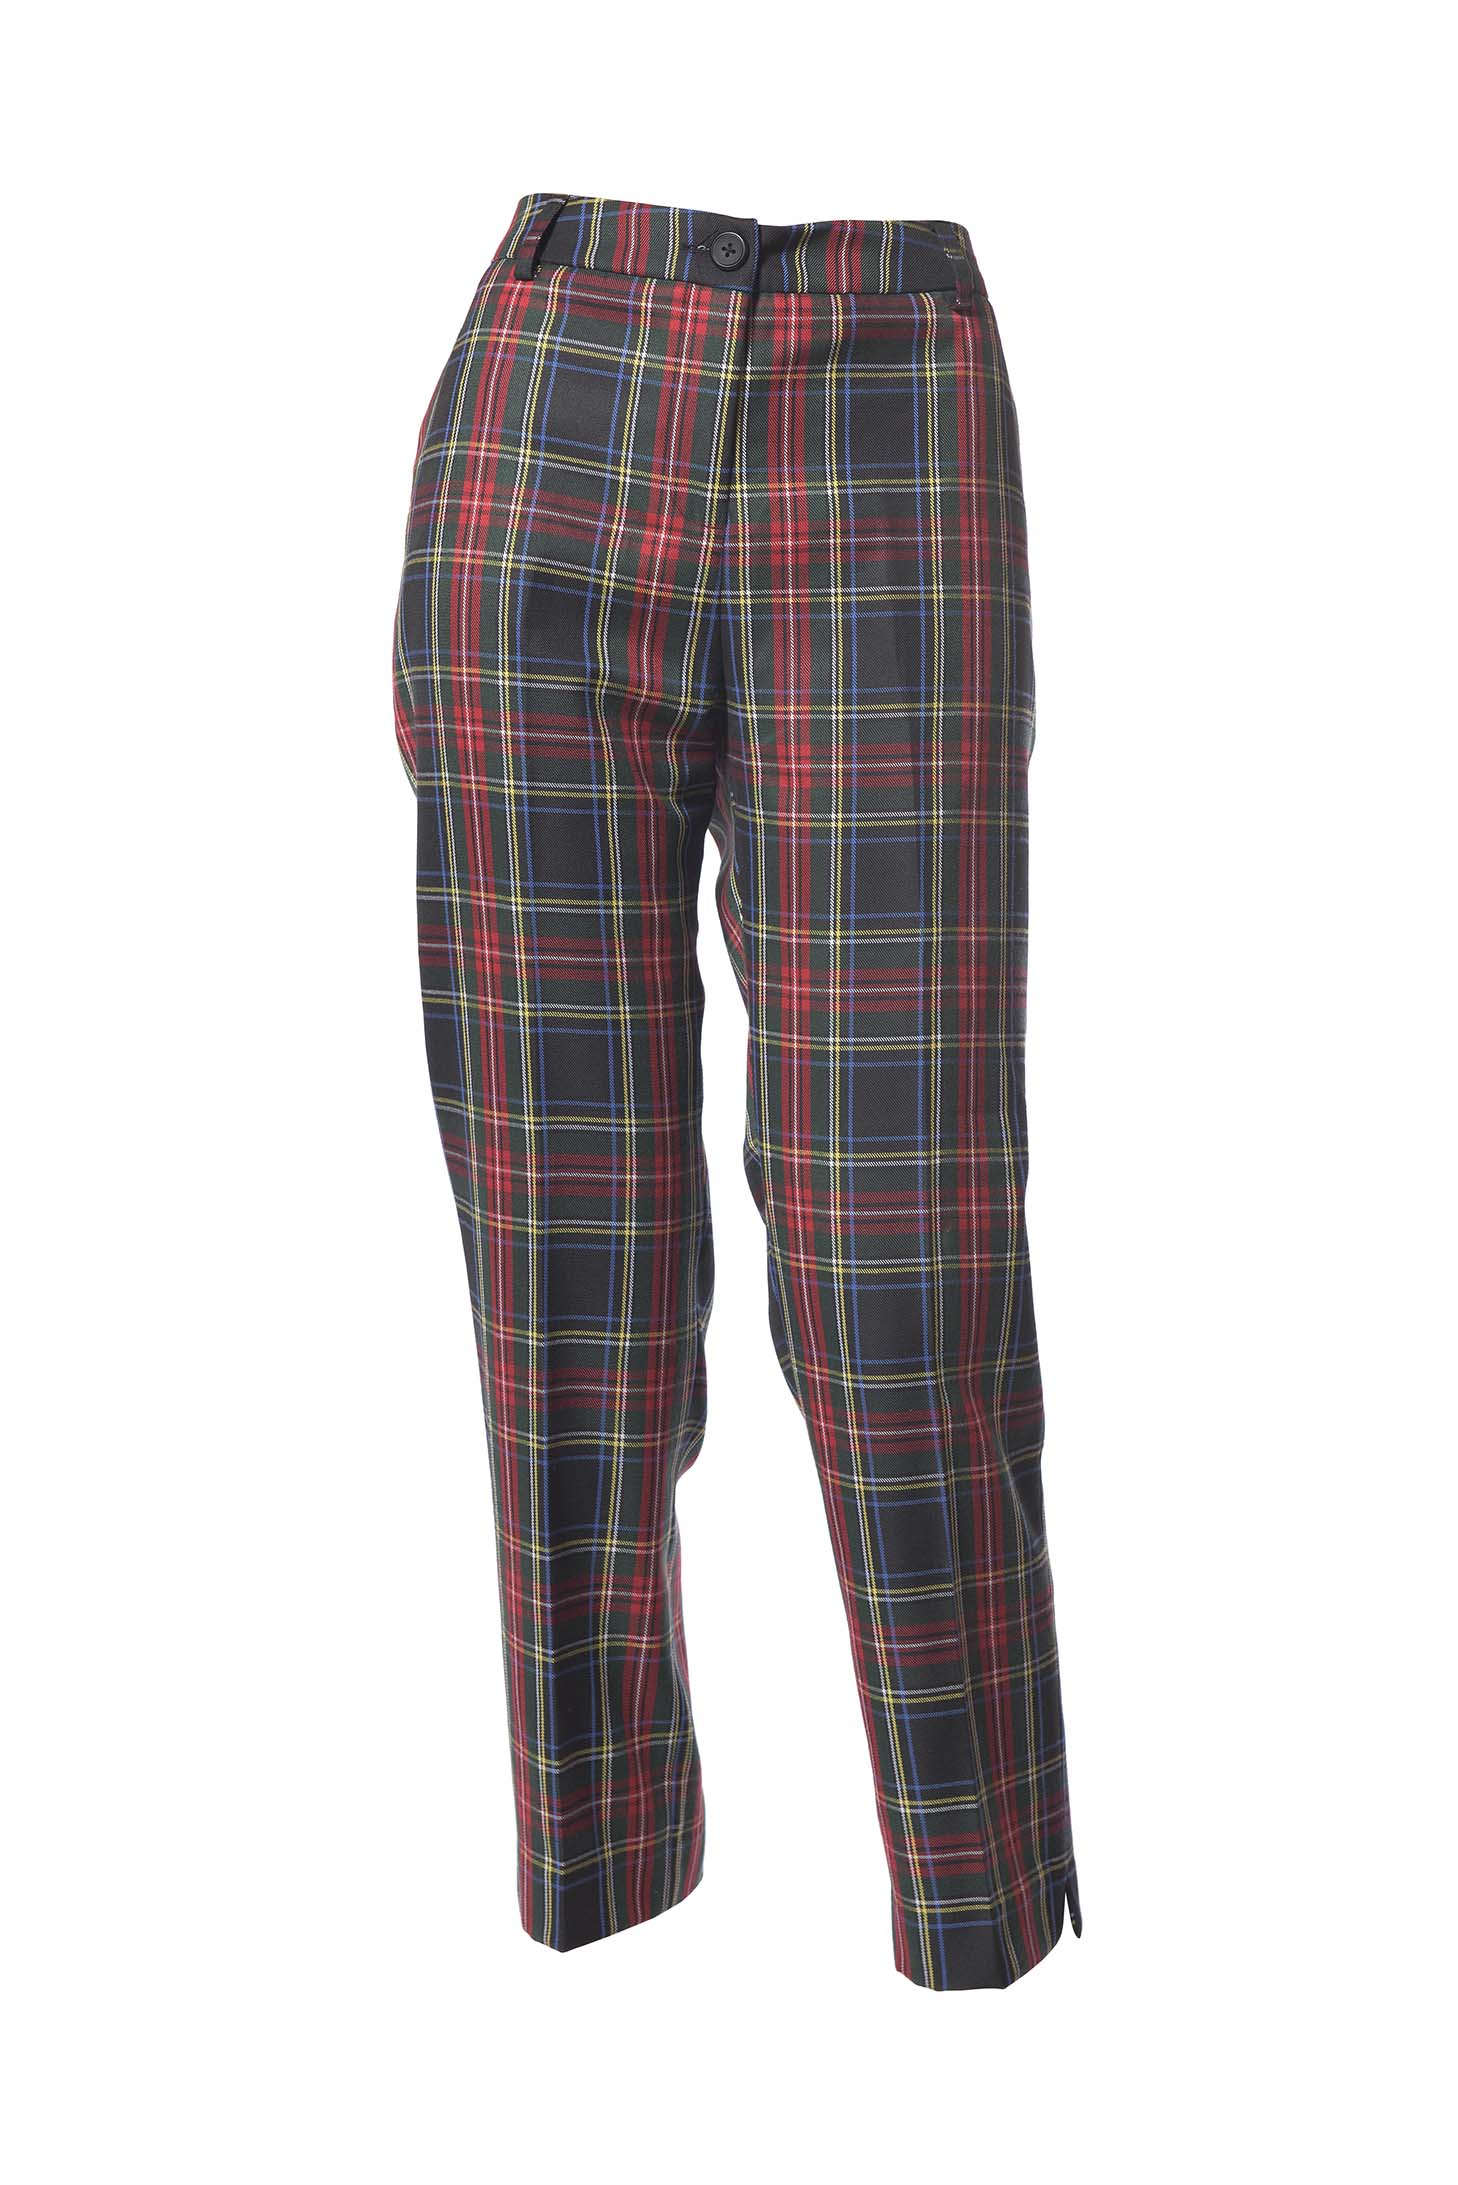 Find great deals on eBay for plaid trousers. Shop with confidence.